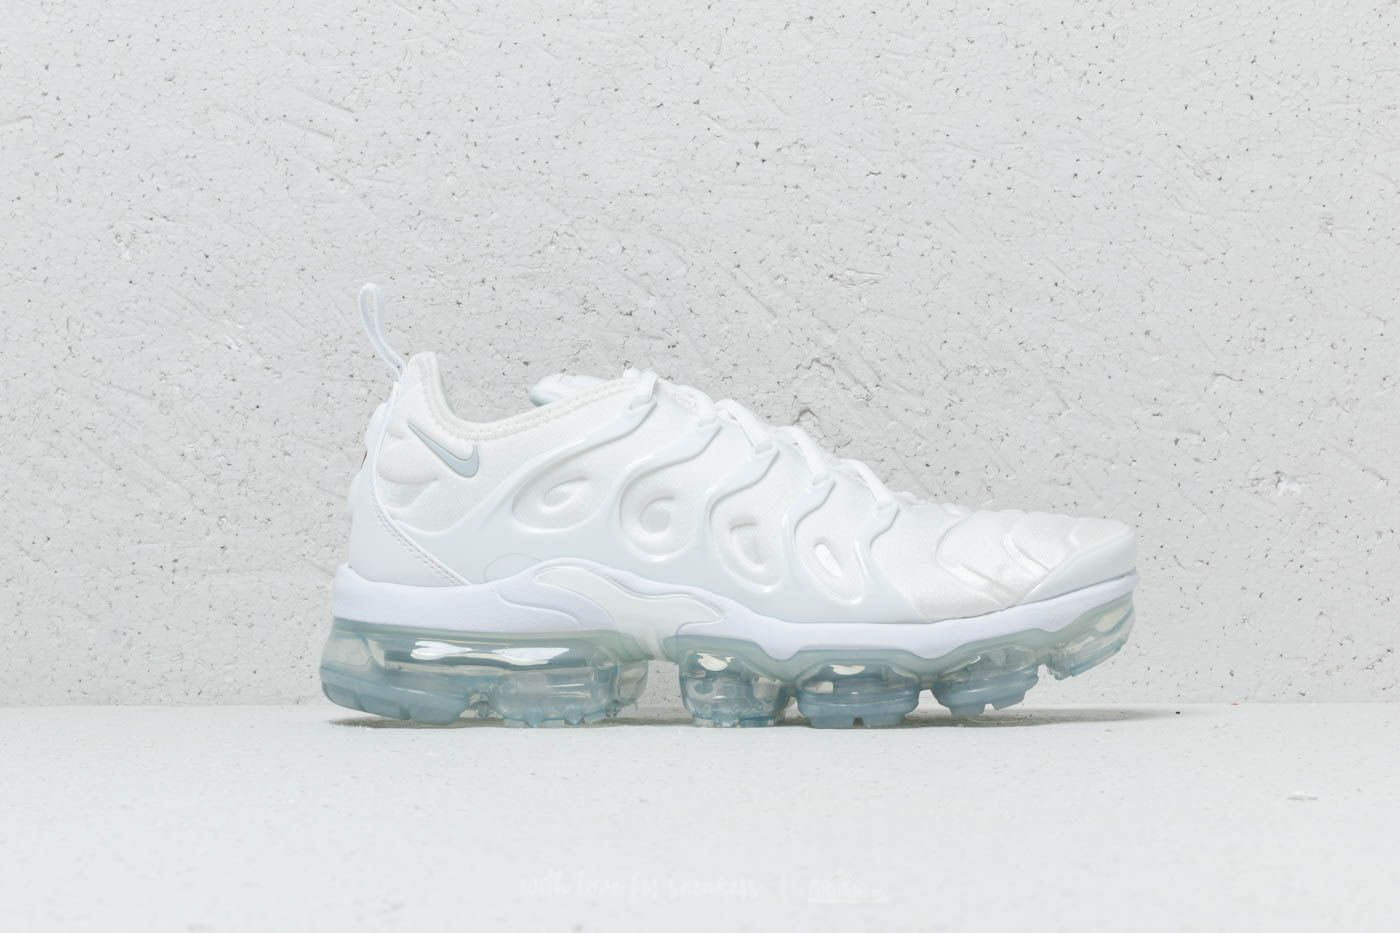 quality design 87dfb 23616 Nike Air Vapormax Plus White  White-Pure Platinum at a great price 209 €